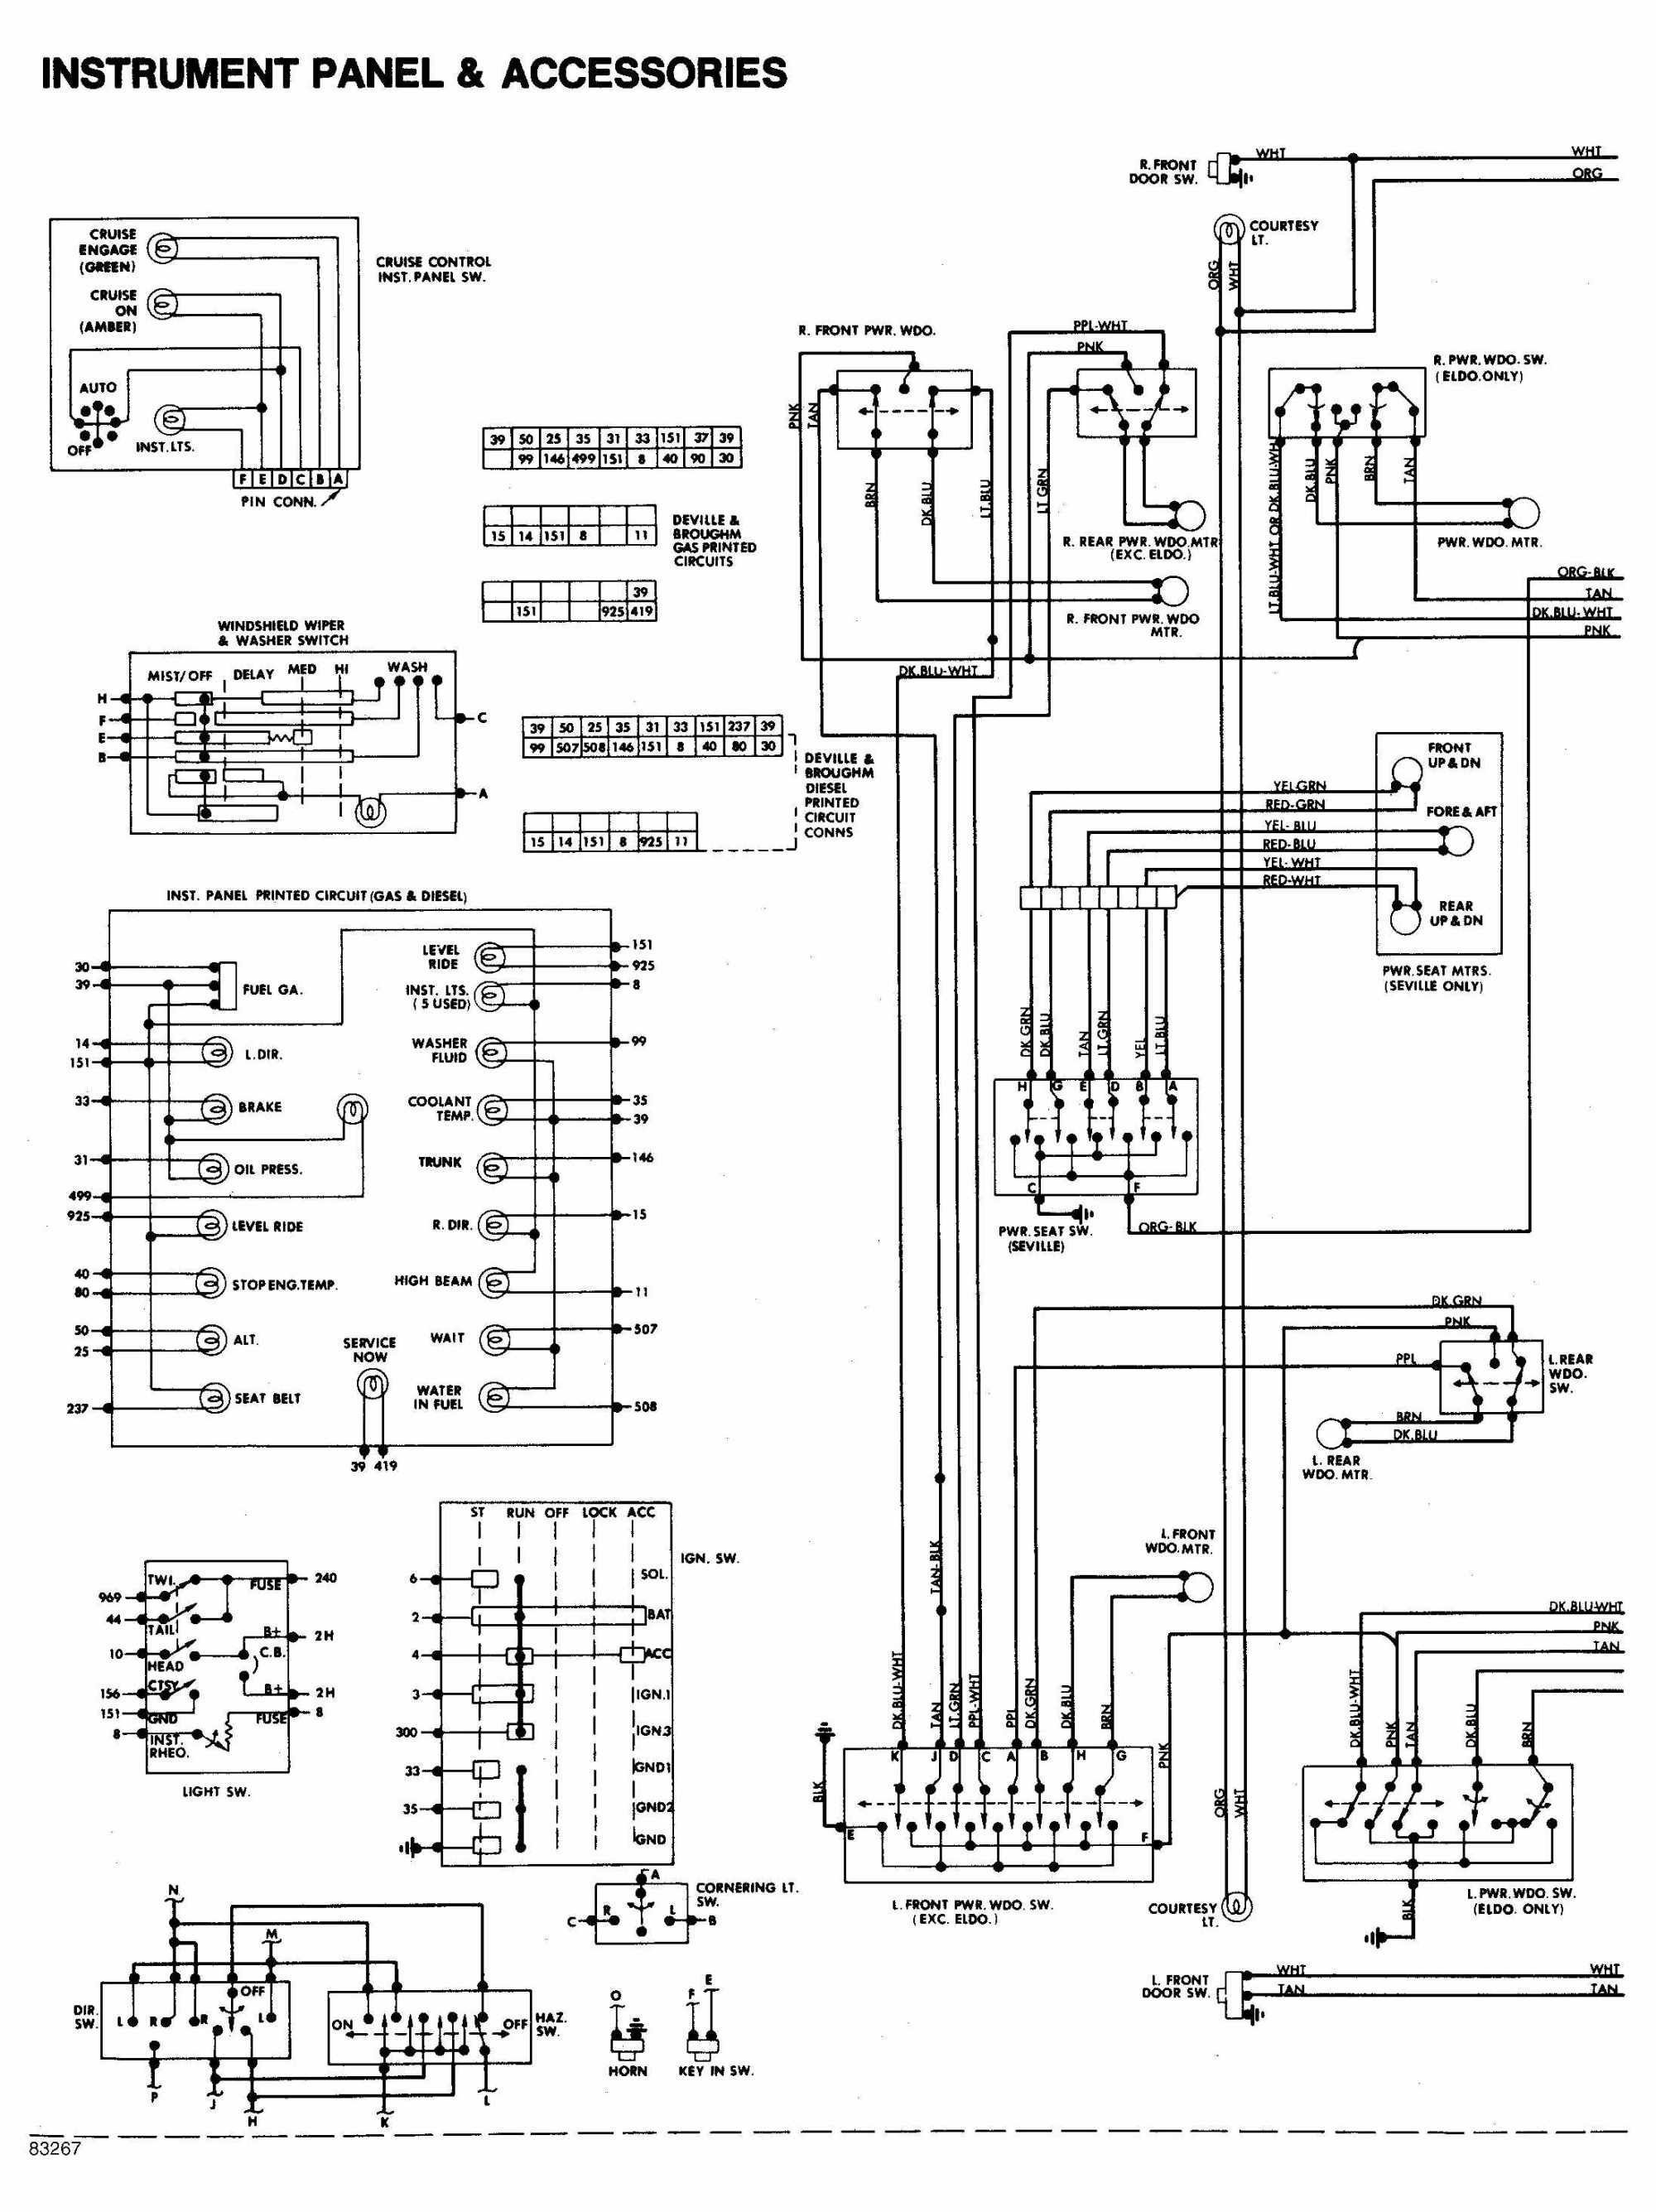 hight resolution of 1984 k5 blazer fuse box pictures to pin on pinterest 1984 k5 blazer fuse diagram 1984